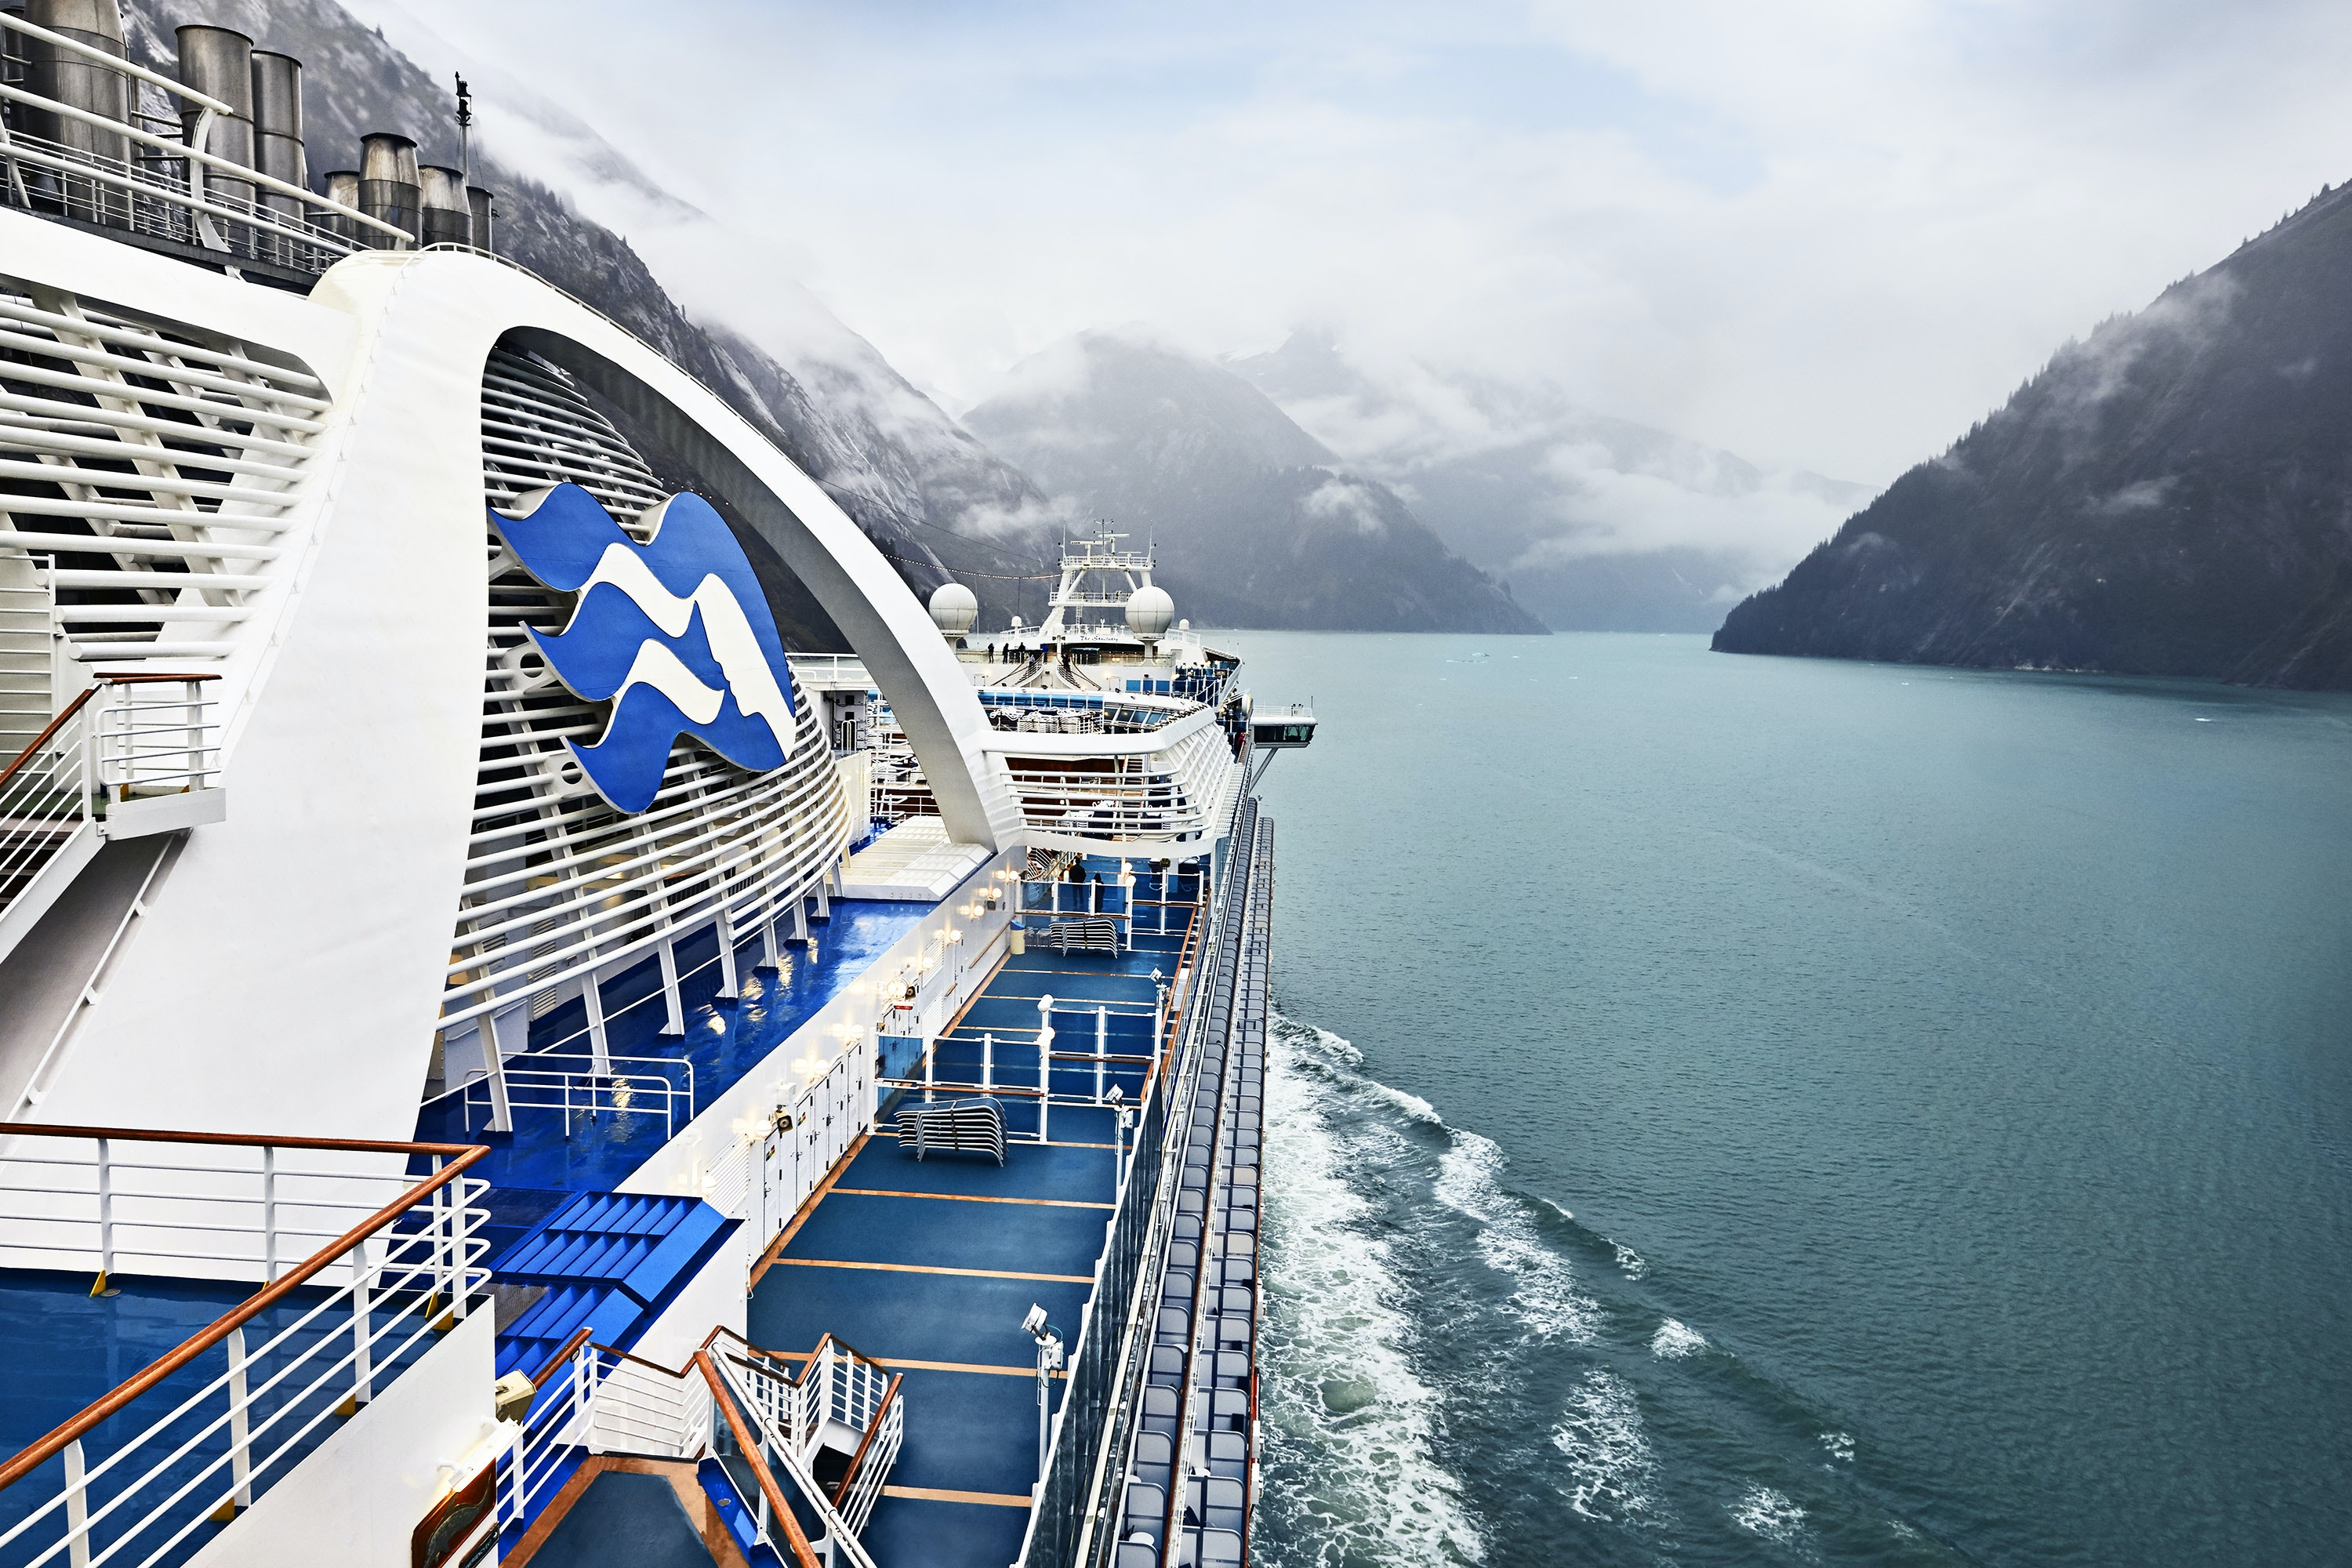 When AFAR readers want to cruise to Alaska, they want to cruise with Princess.